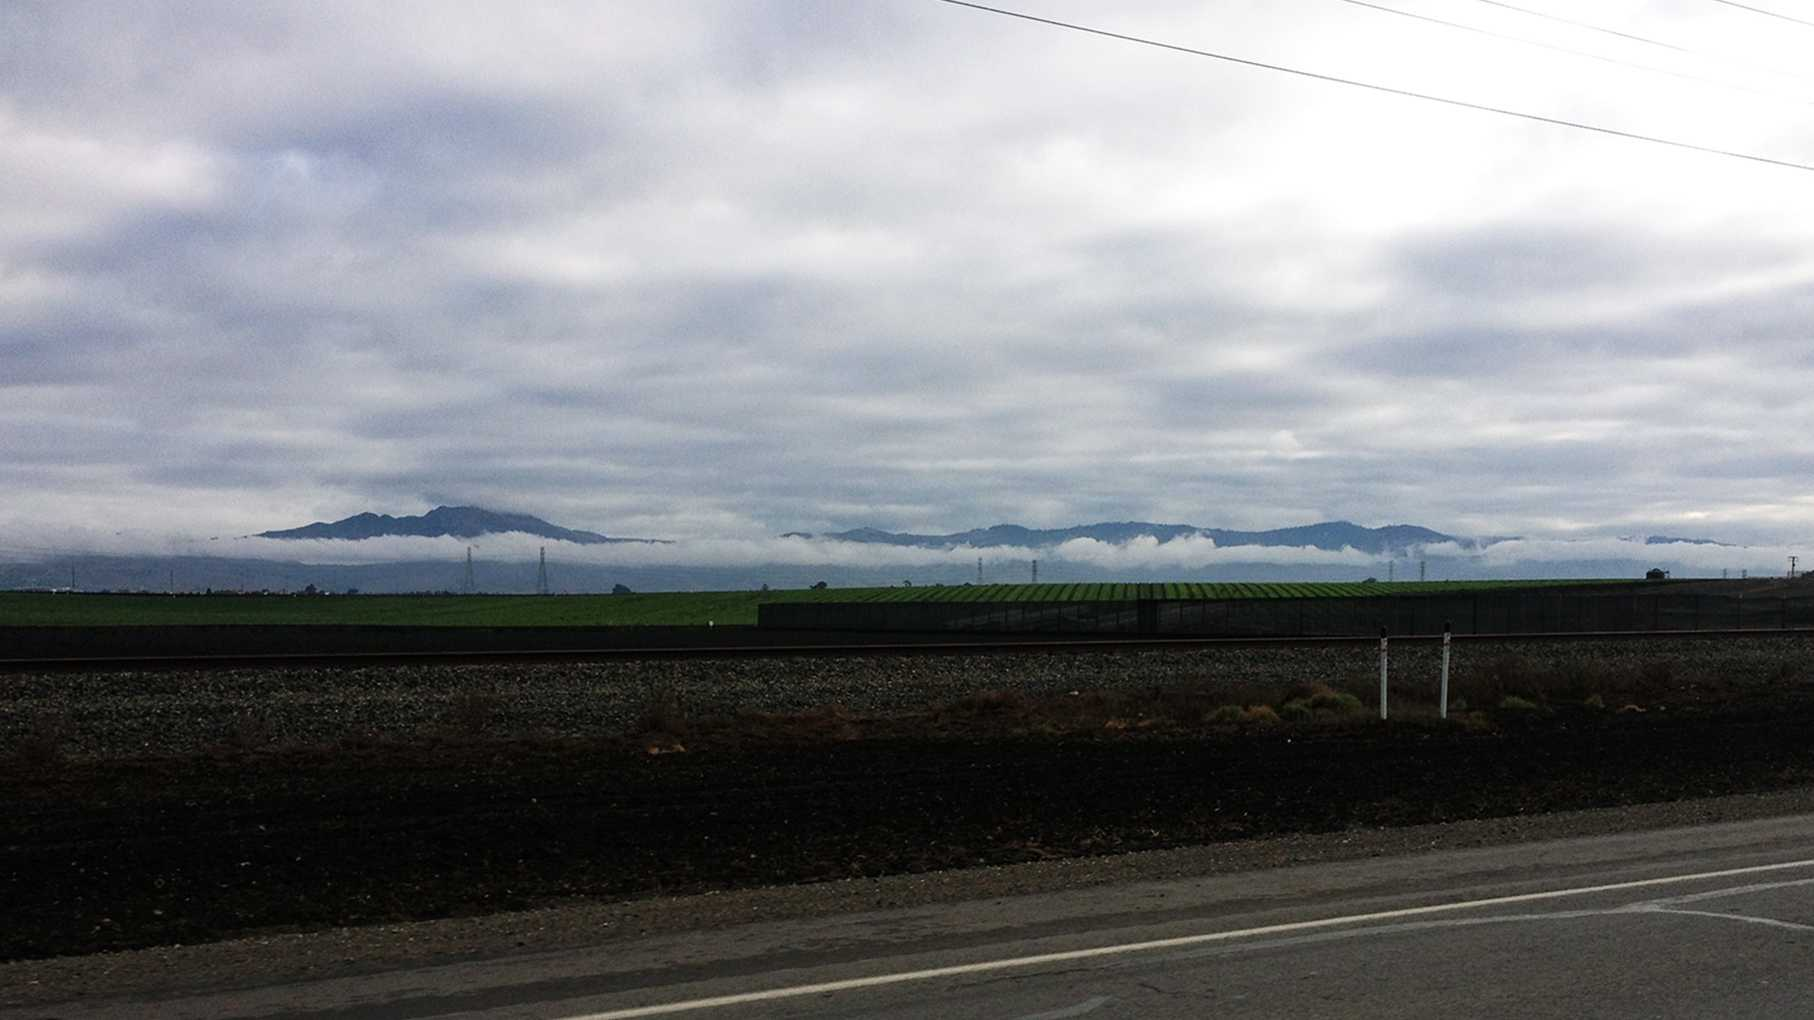 Rain clouds move past the Salinas Valley. (Nov. 21, 2013)